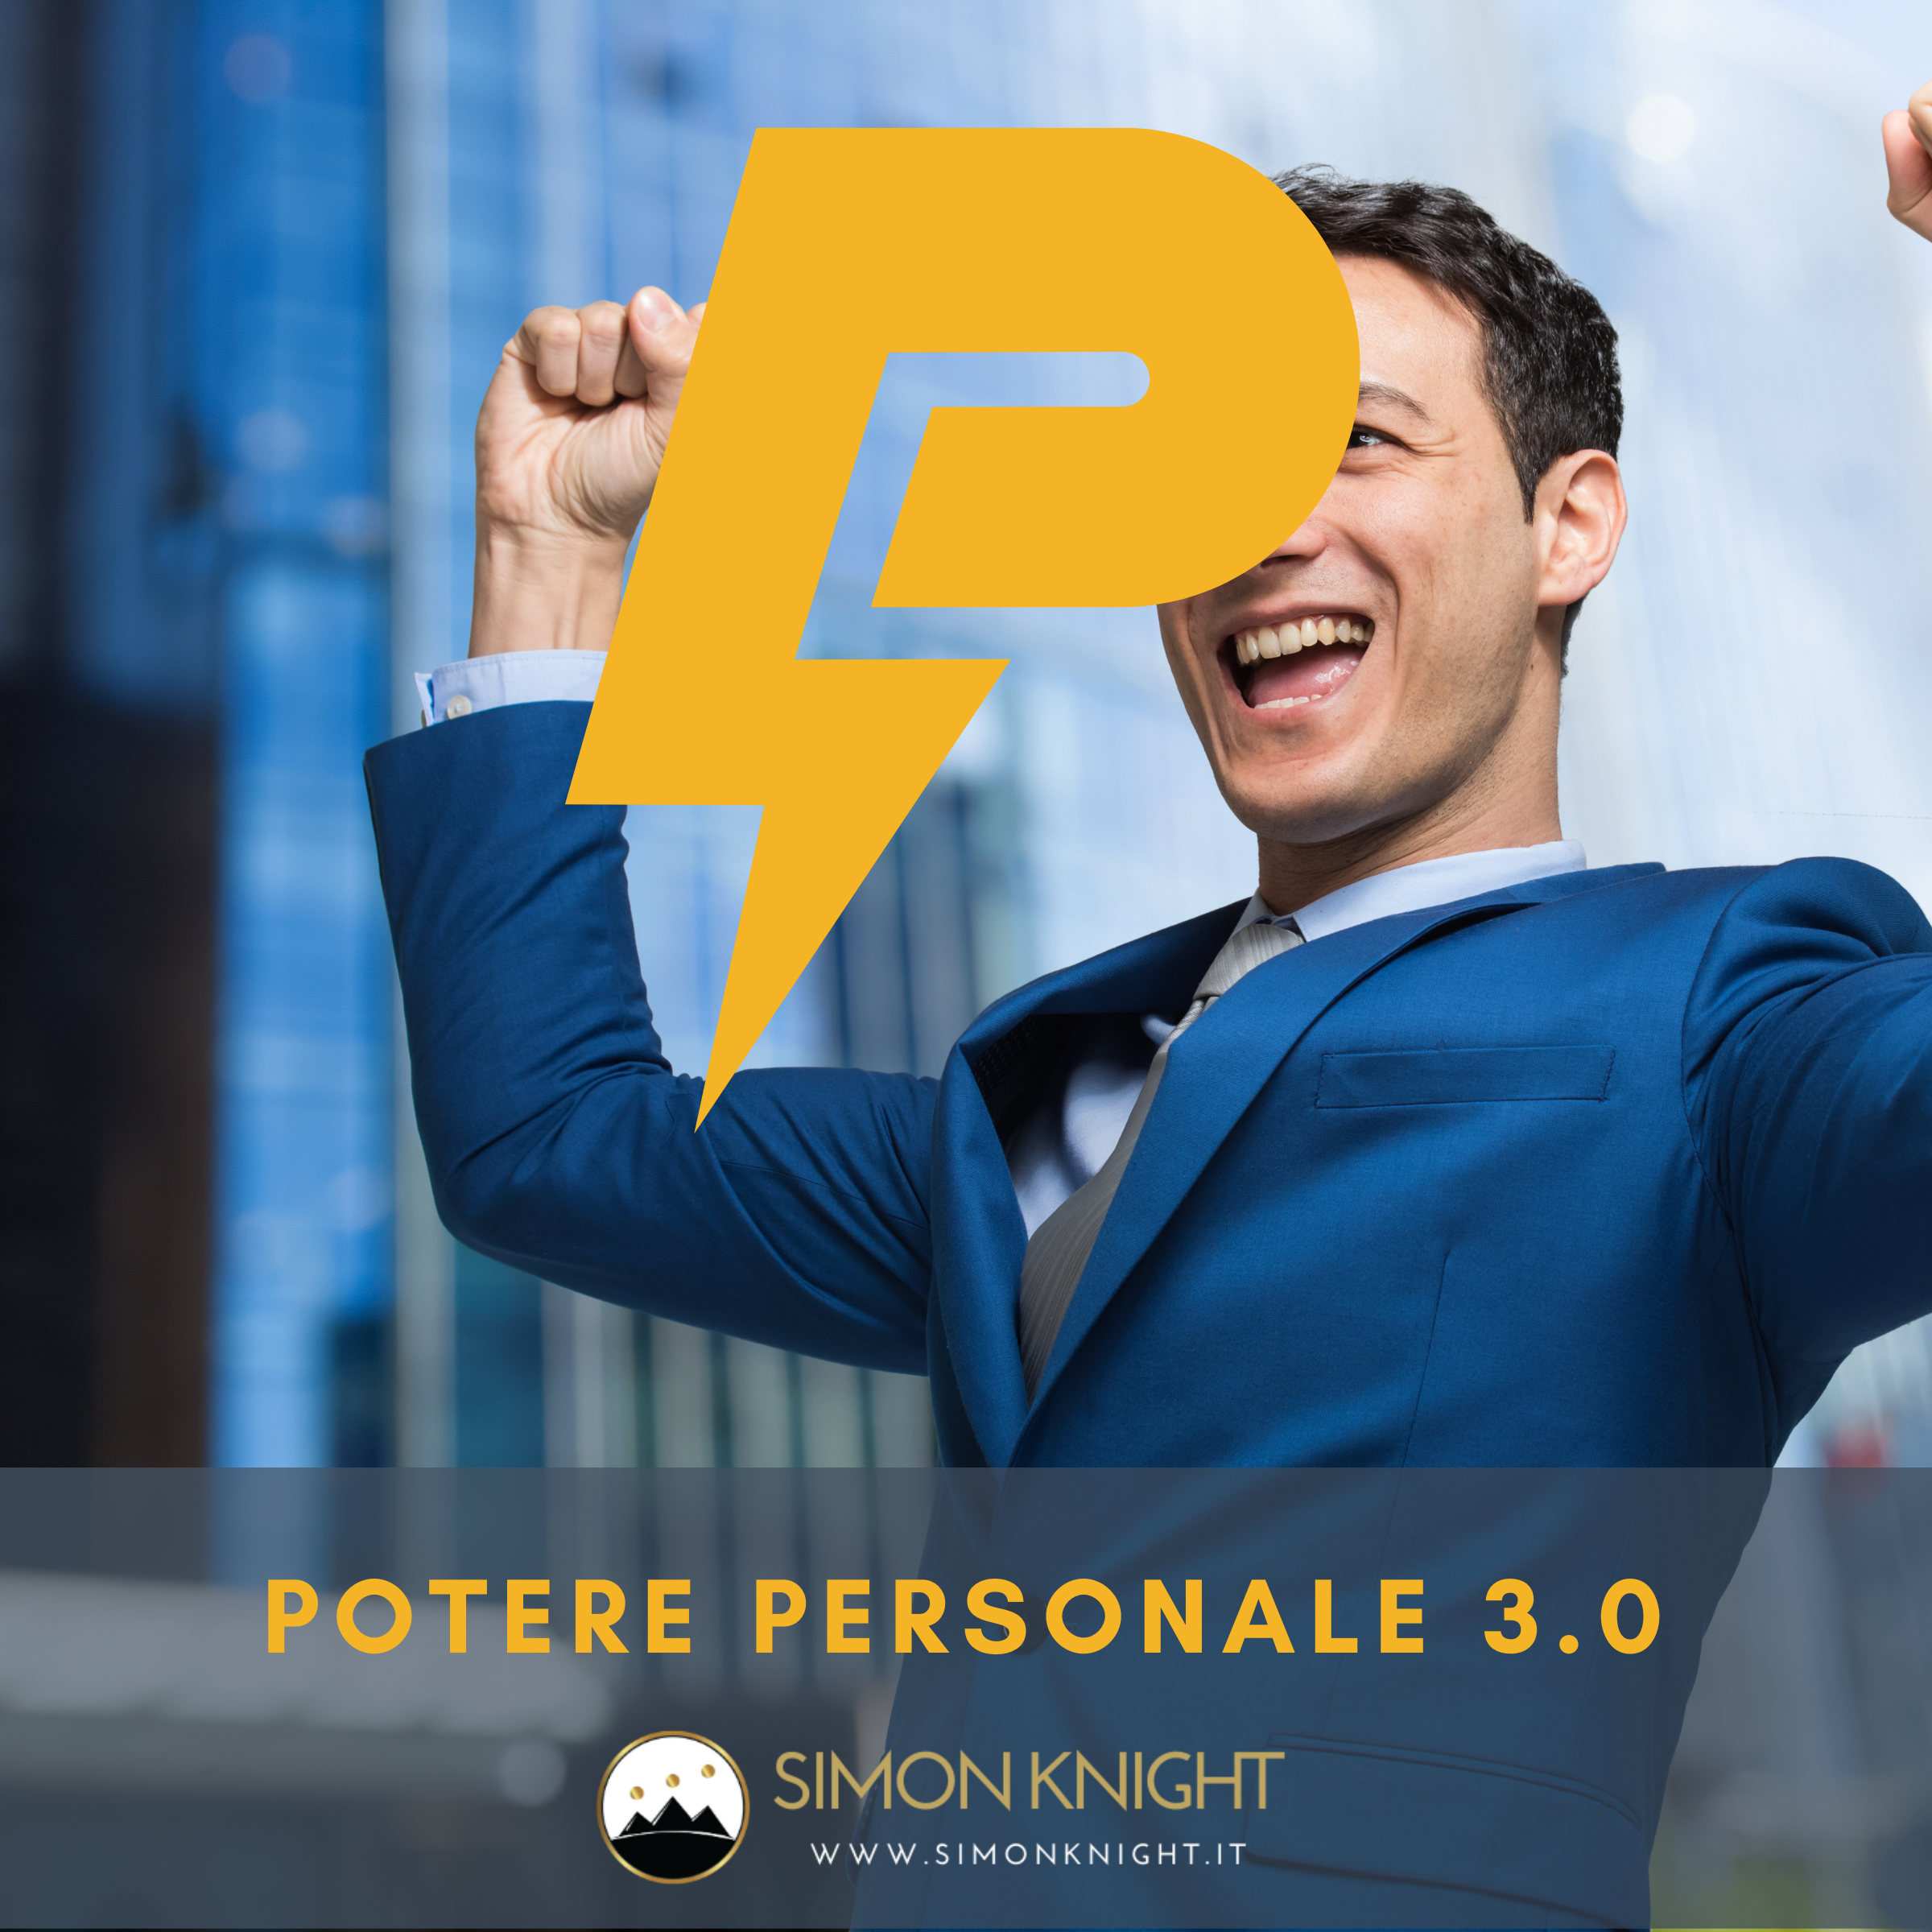 Potere Personale 3.0